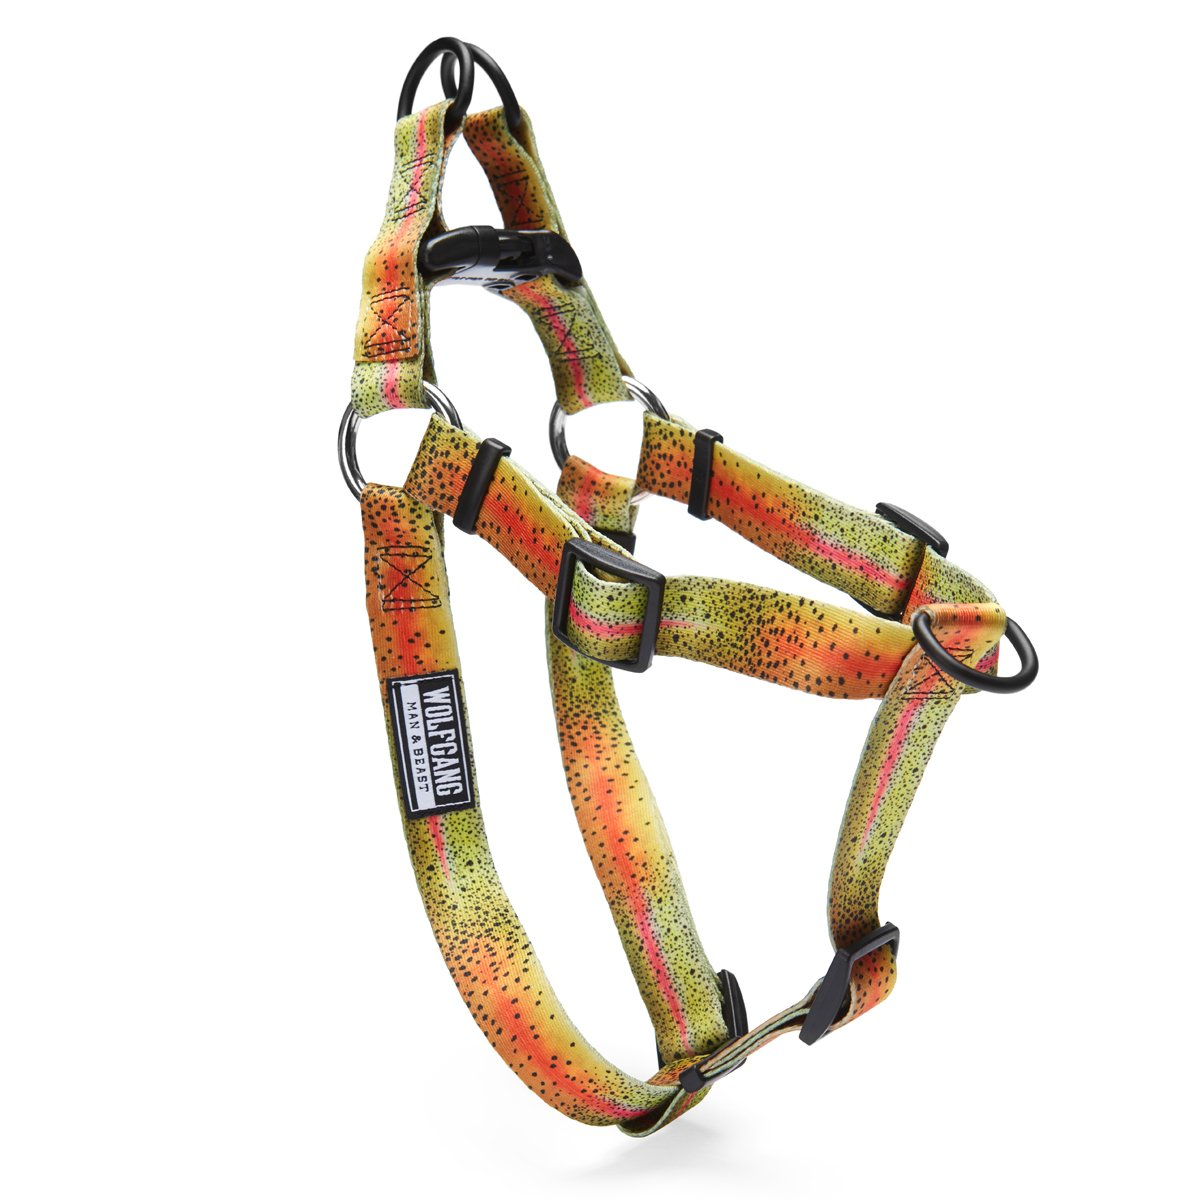 Wolfgang CutBow Comfort Dog Harness